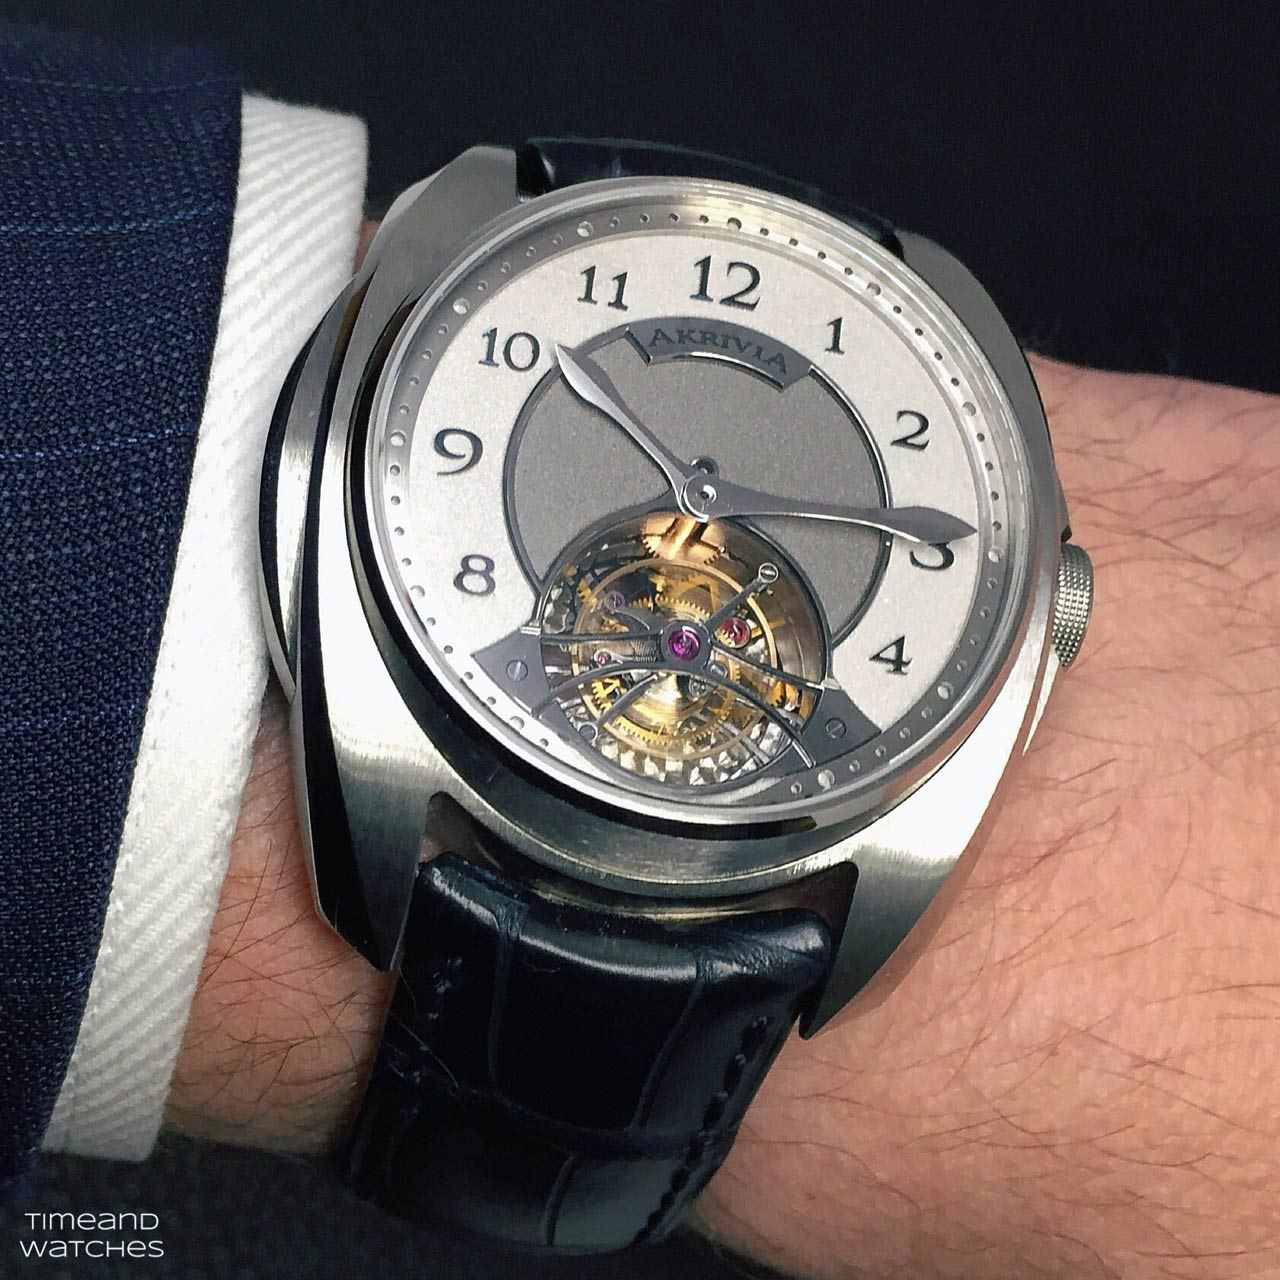 Akrivia Tourbillon Barrette Miroir Time And Watches